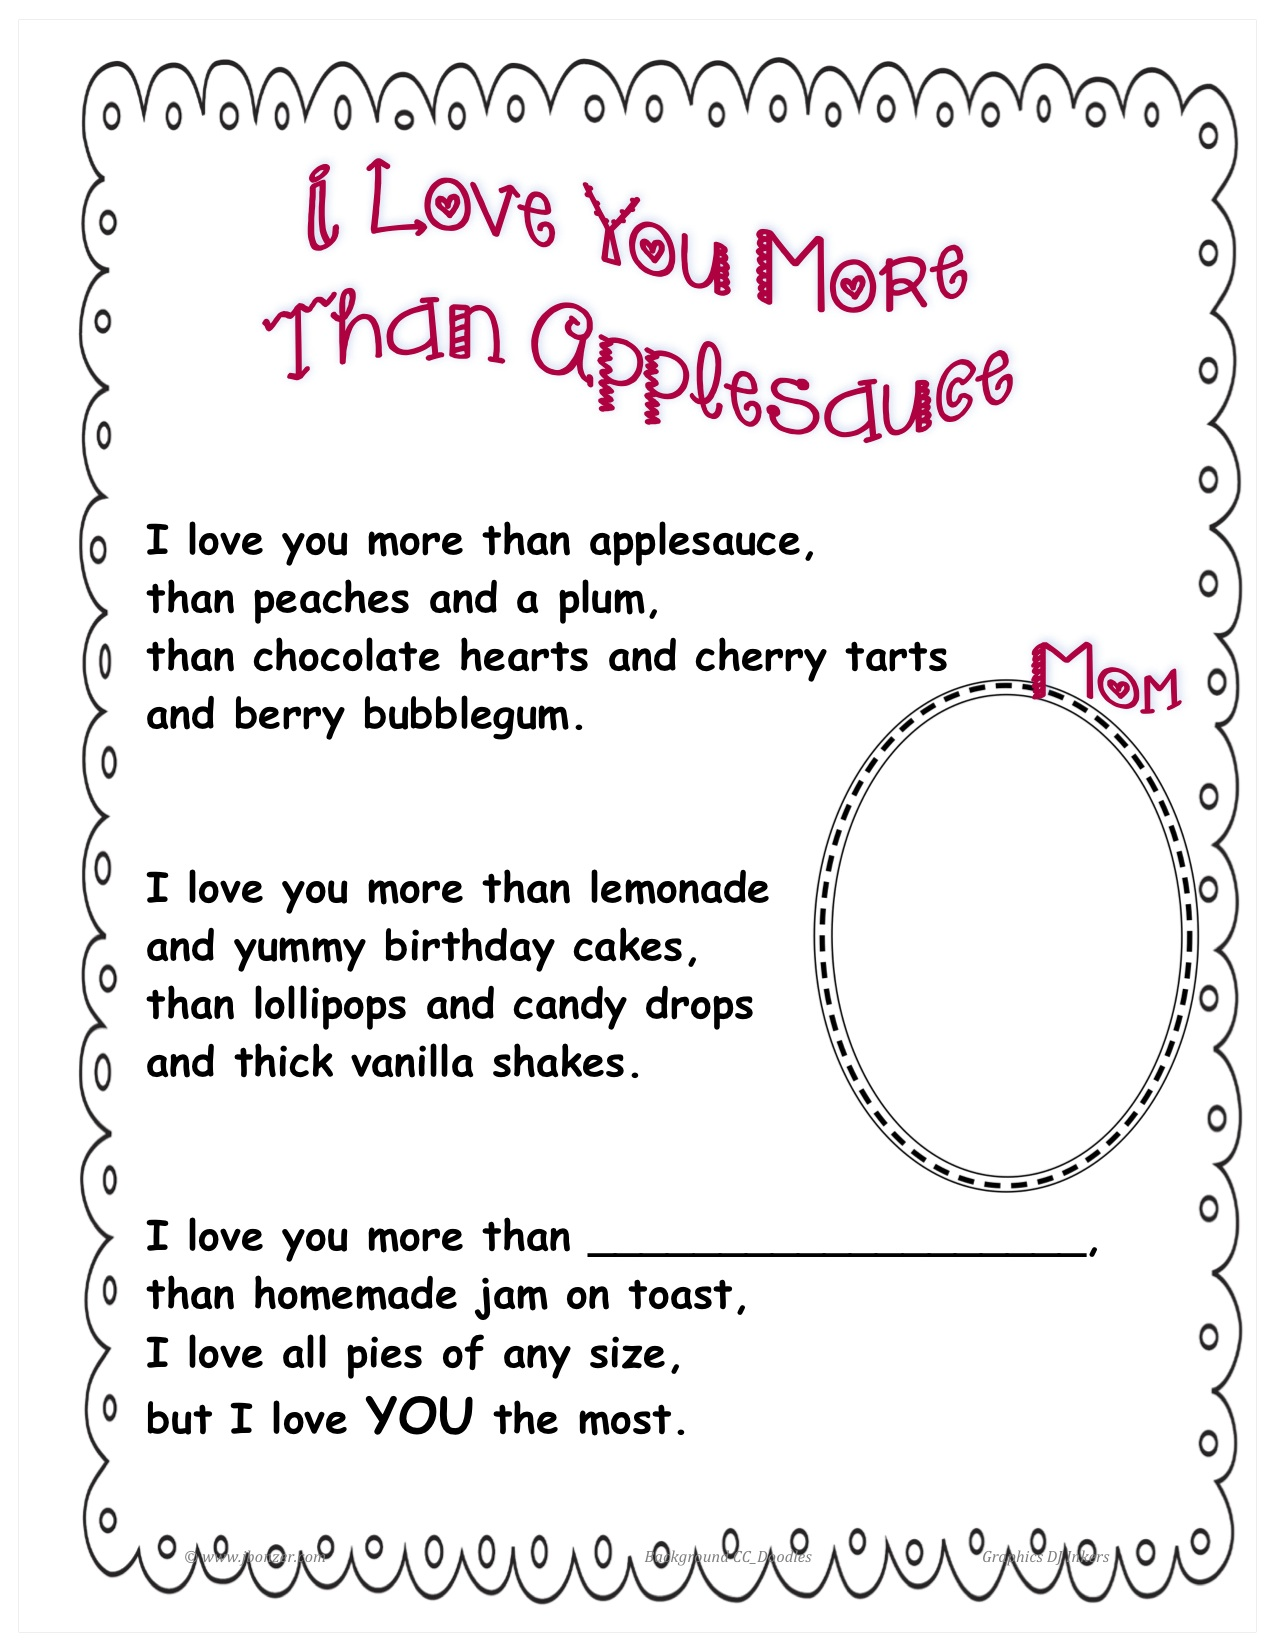 i love you more than applesauce poem